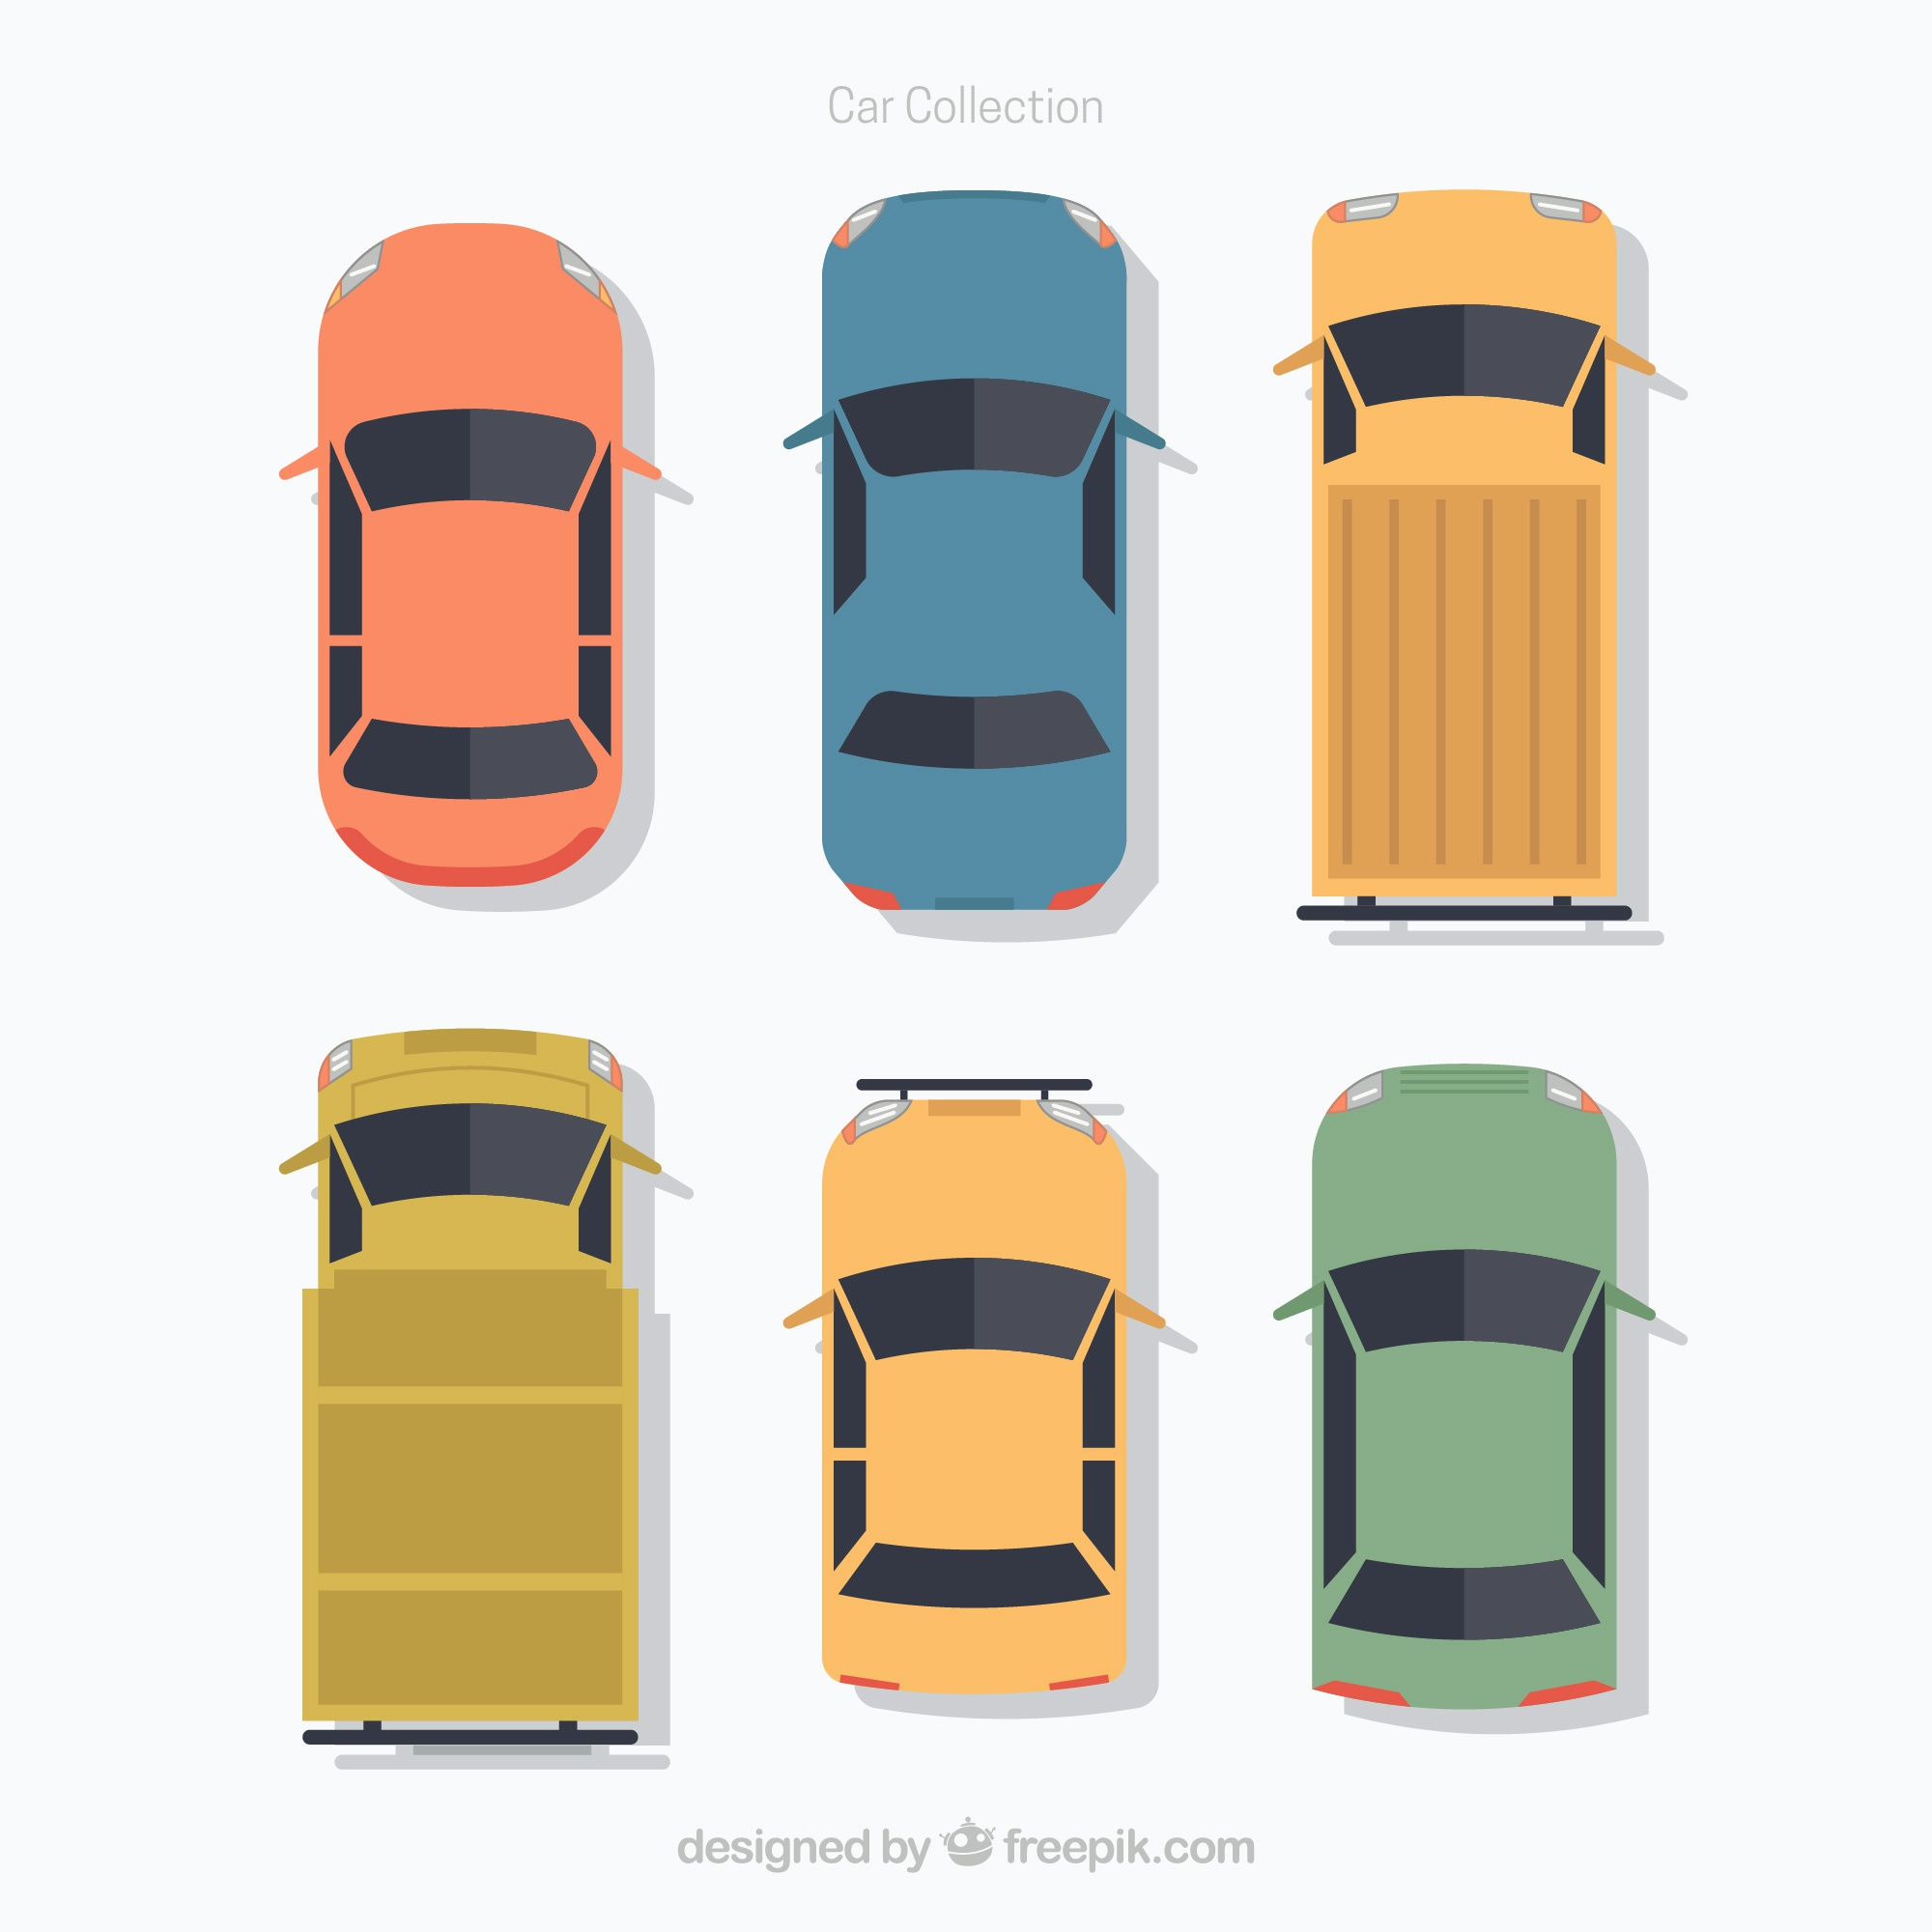 Top view of flat cars and vans